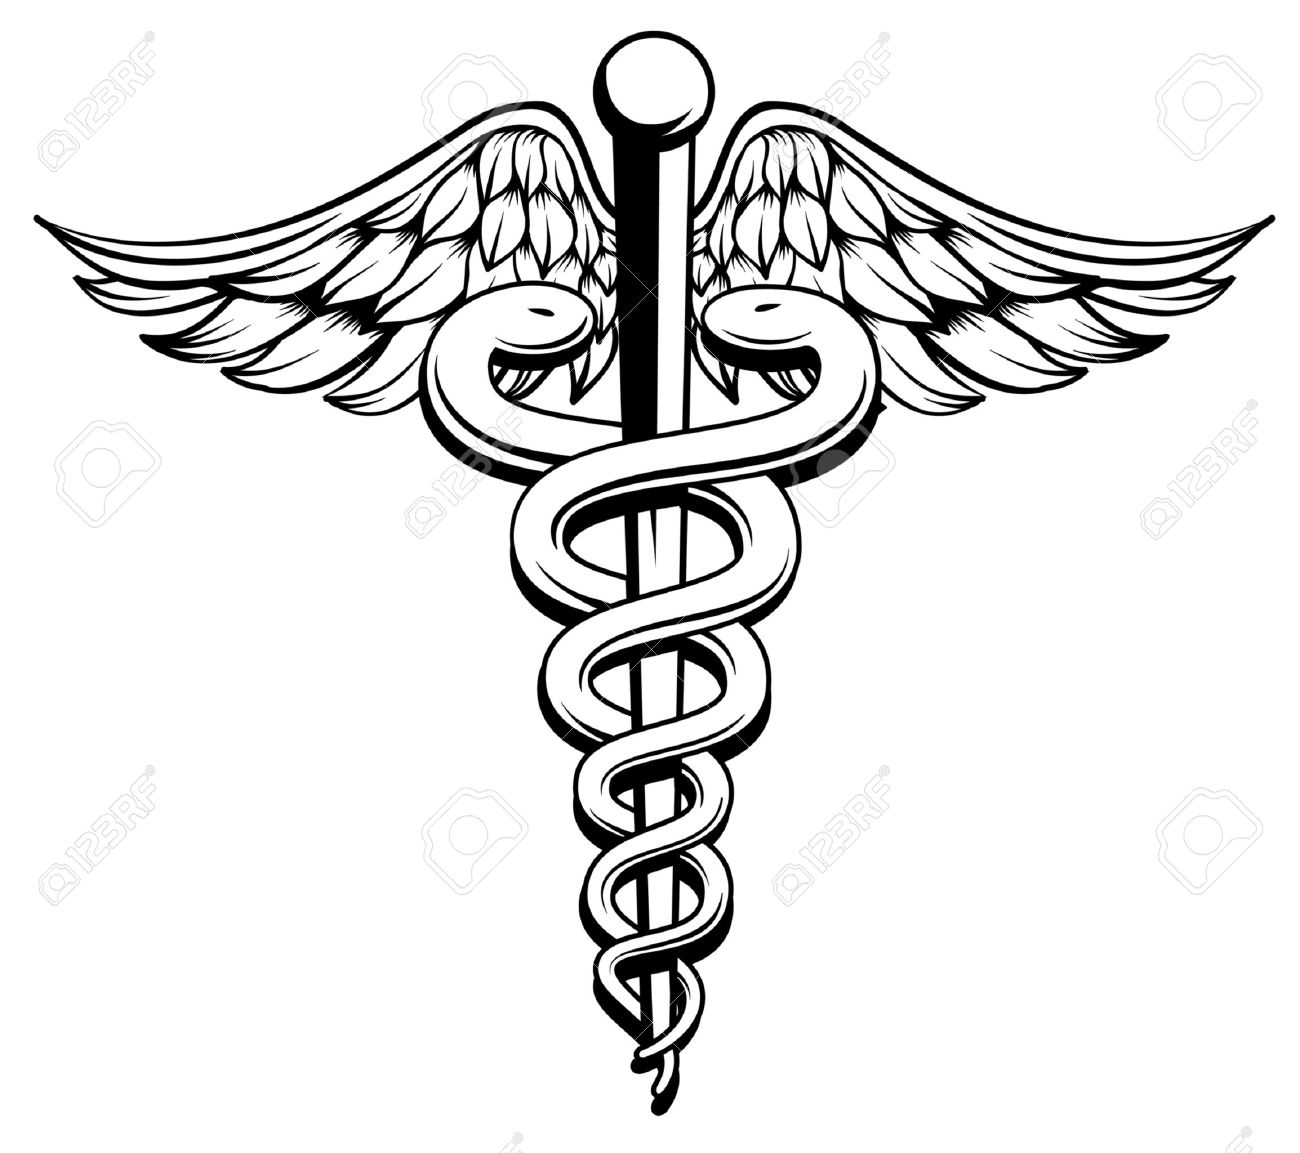 1300x1153 Medical Symbol Caduceus With Snakes And Wings Royalty Free